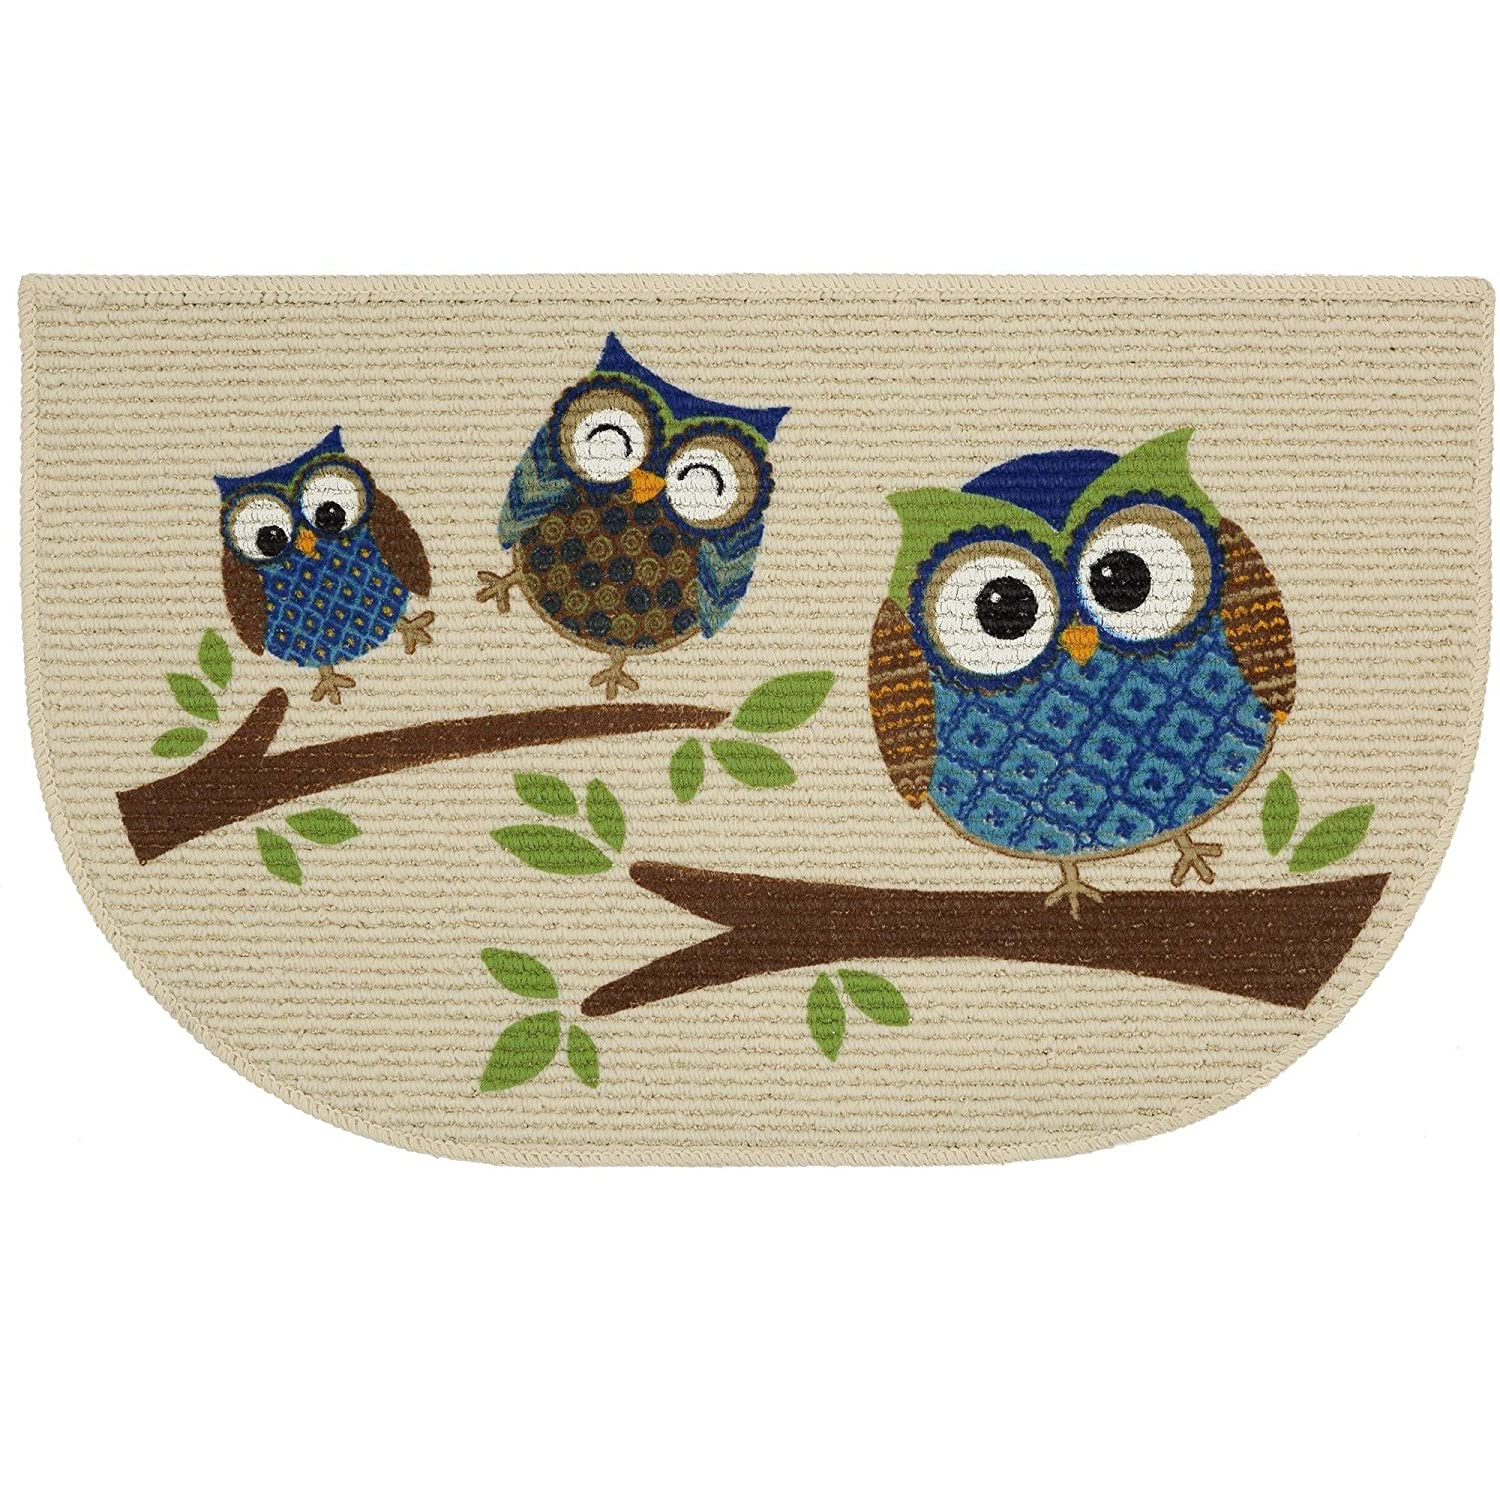 Mainstays Slice Kitchen Rug, Owl Branches, 18 X 30 Inches (1)